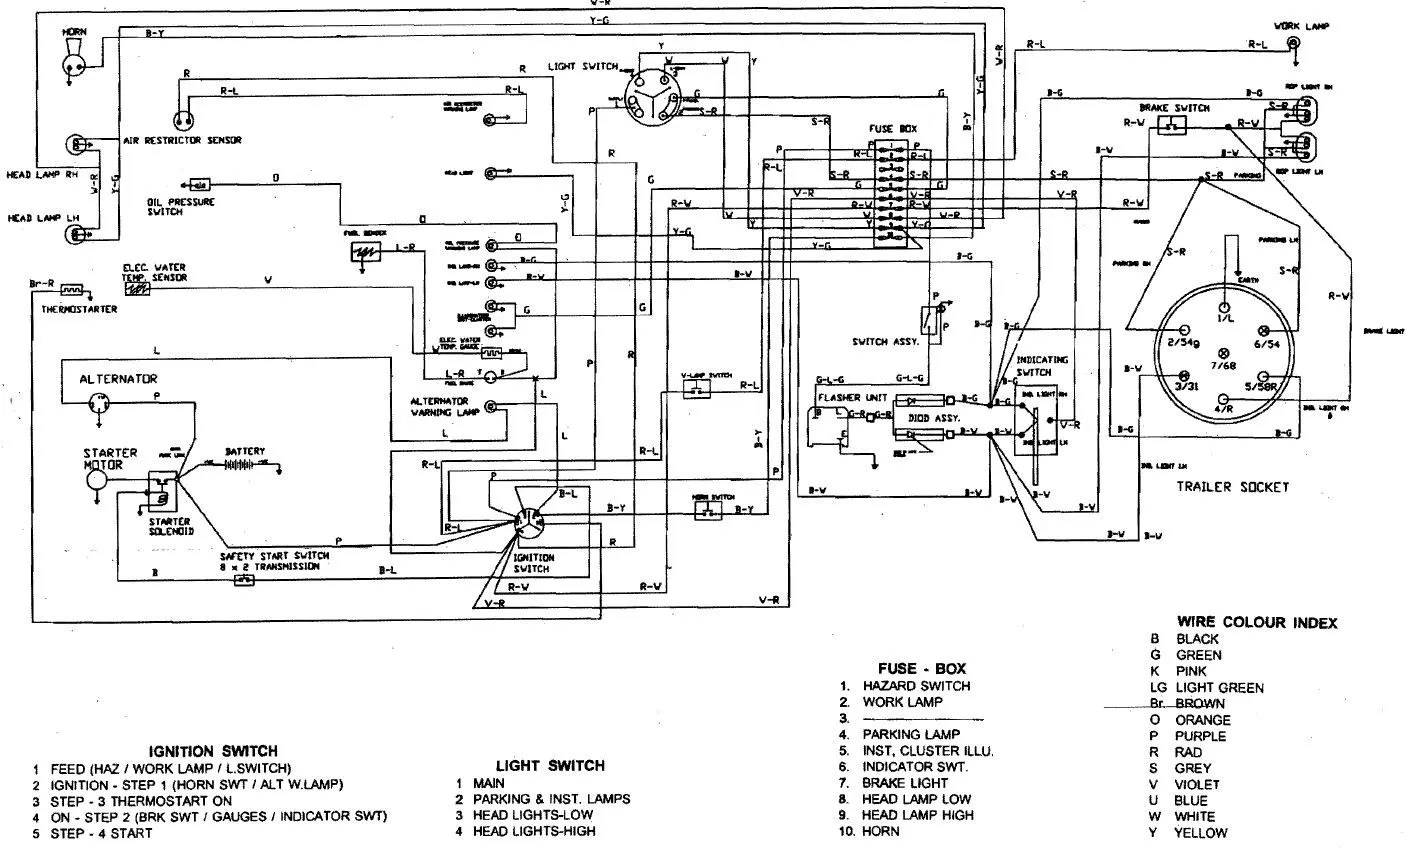 hight resolution of 4000 tractor ignition wiring diagram attached is a wiring diagram